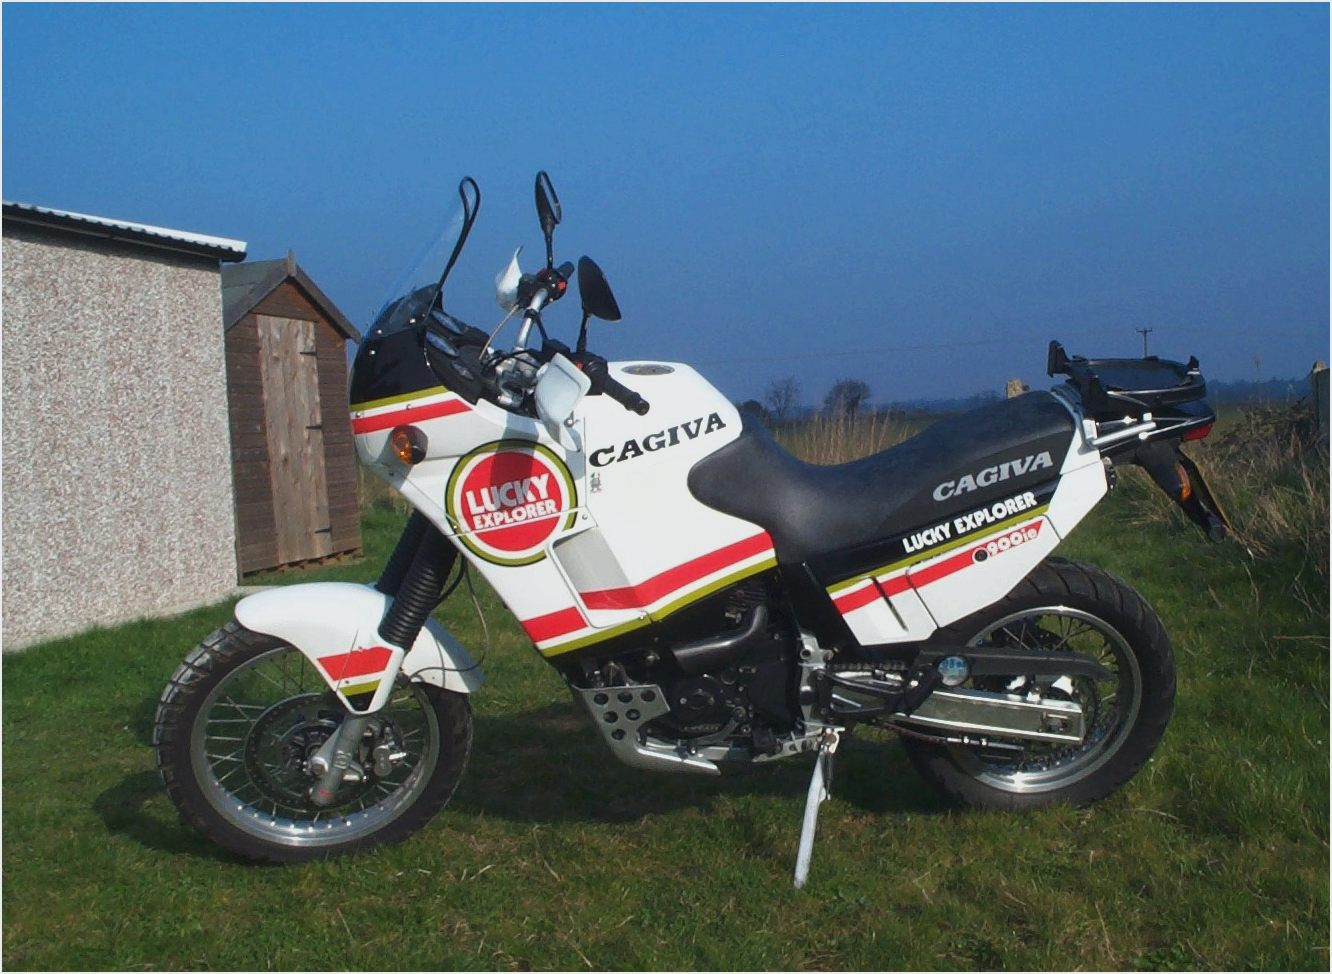 Cagiva Elefant 900 IE images #153844